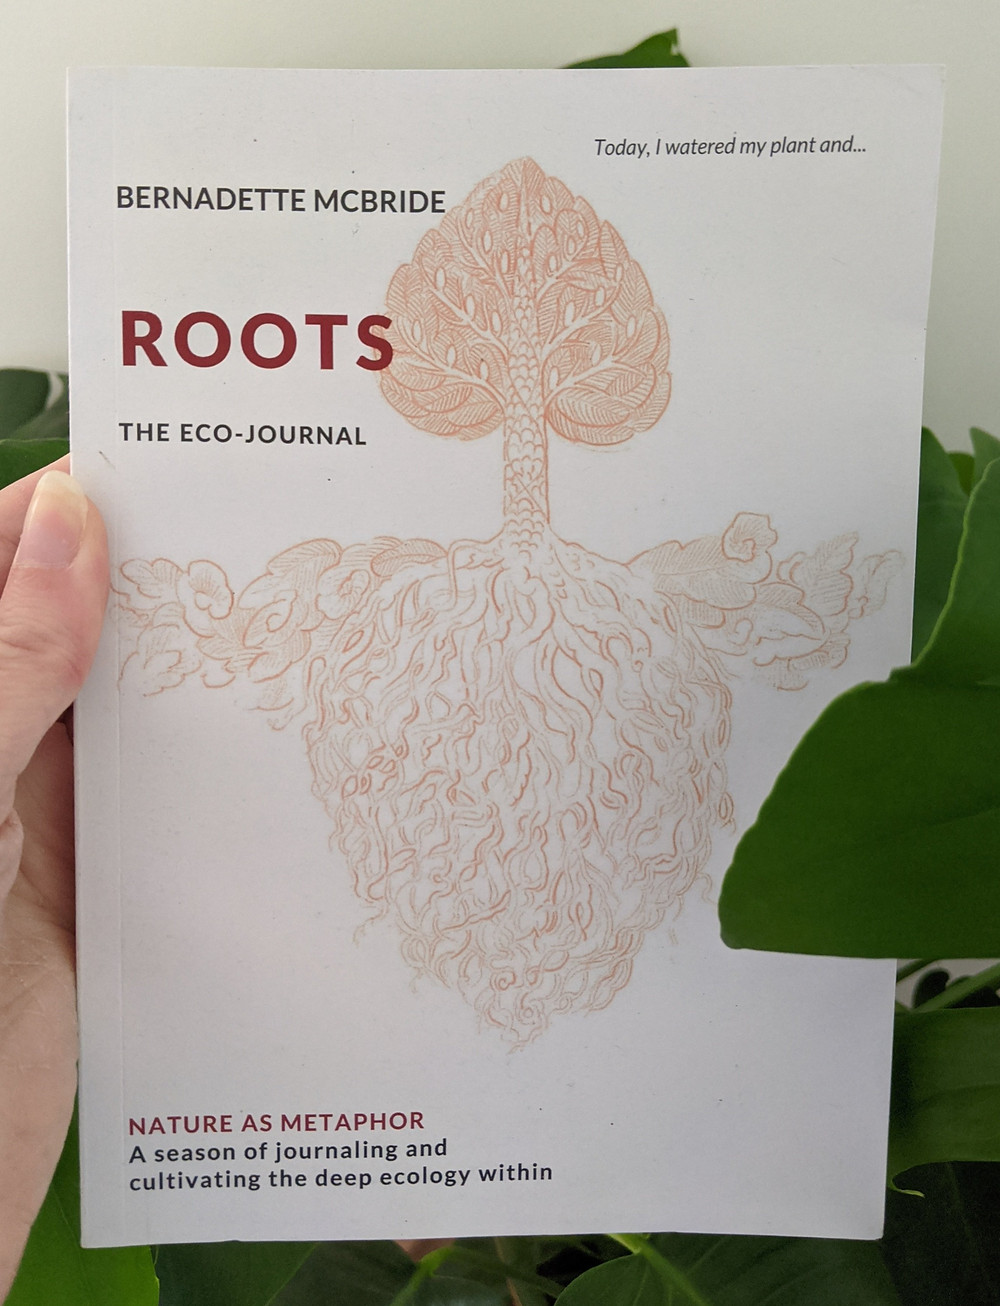 Bernadette McBride's book, Roots: The Echo-Journal, published by Green Guild of the University of Liverpool (Credit: Image Supplied by Bernadette McBride).